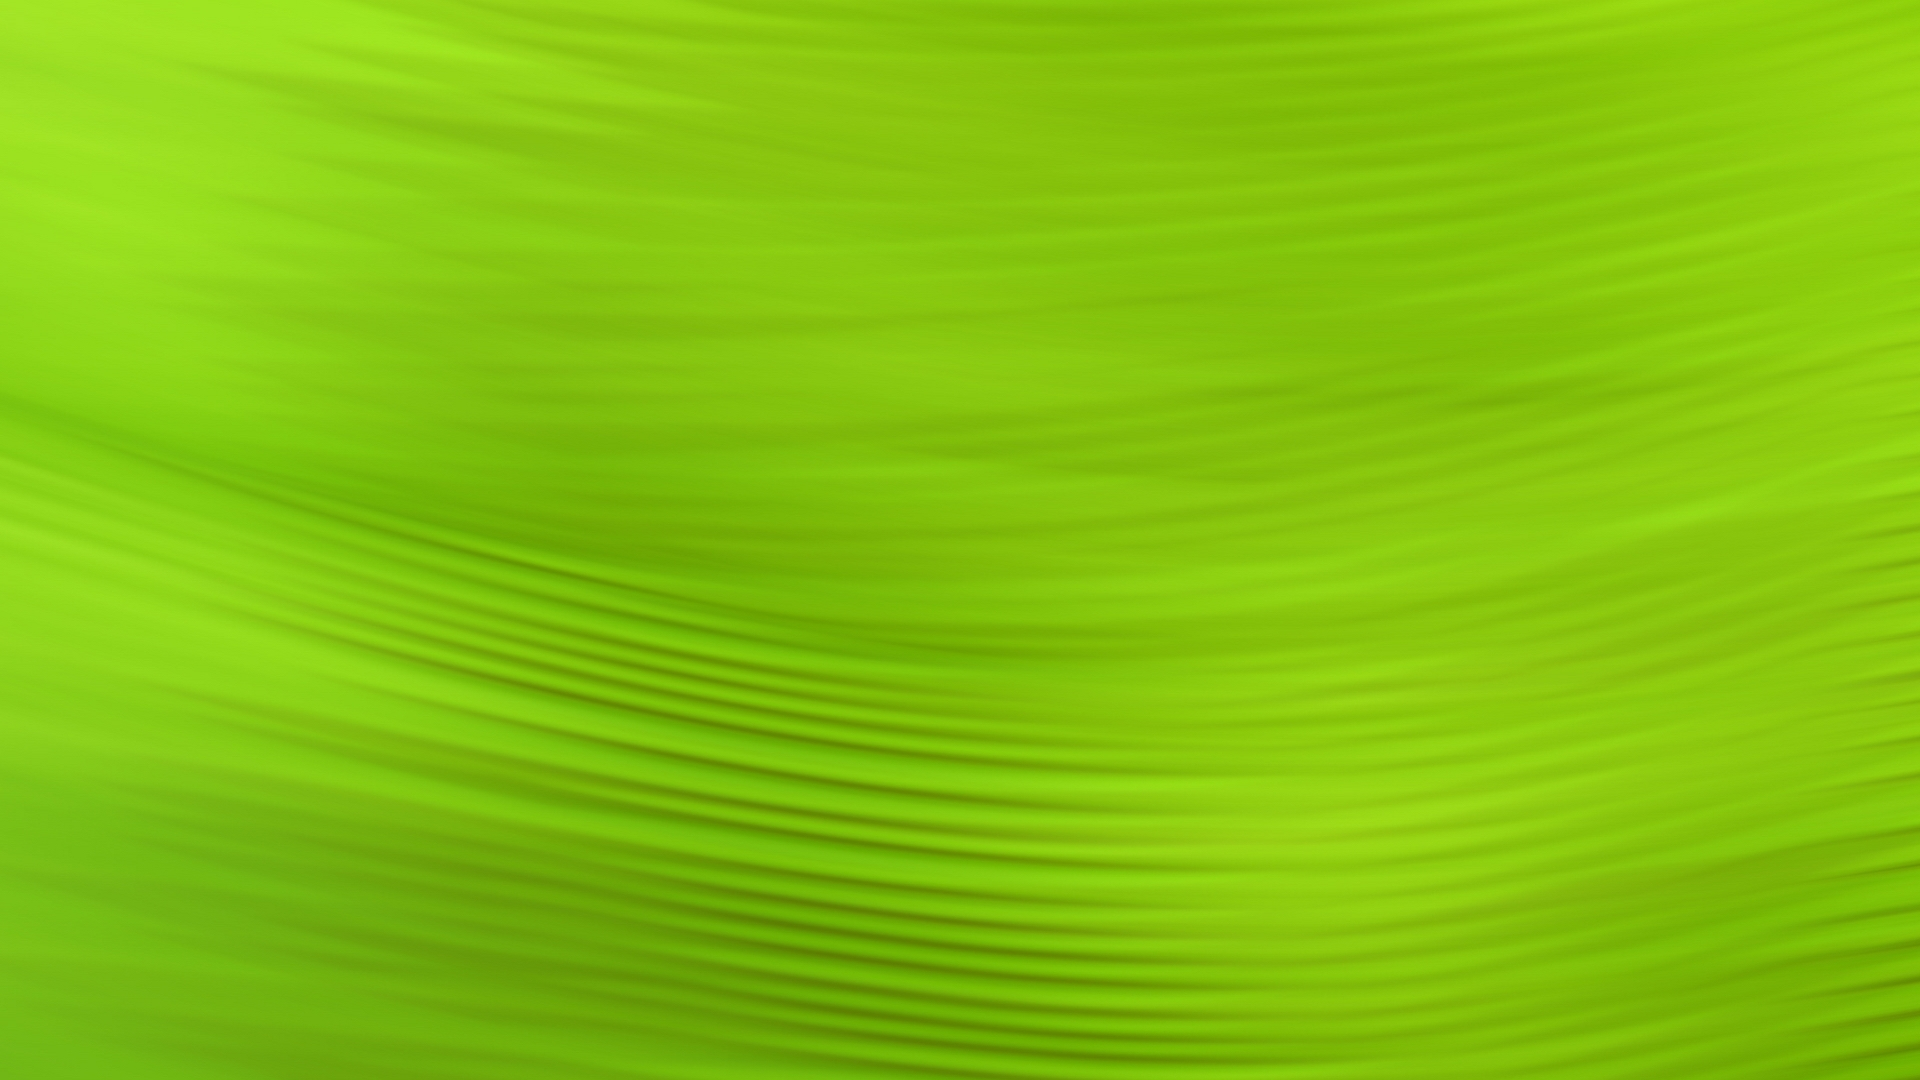 Green Abstract Wallpaper Desktop Backgrou 11459 Hd Wallpapers 1920x1080